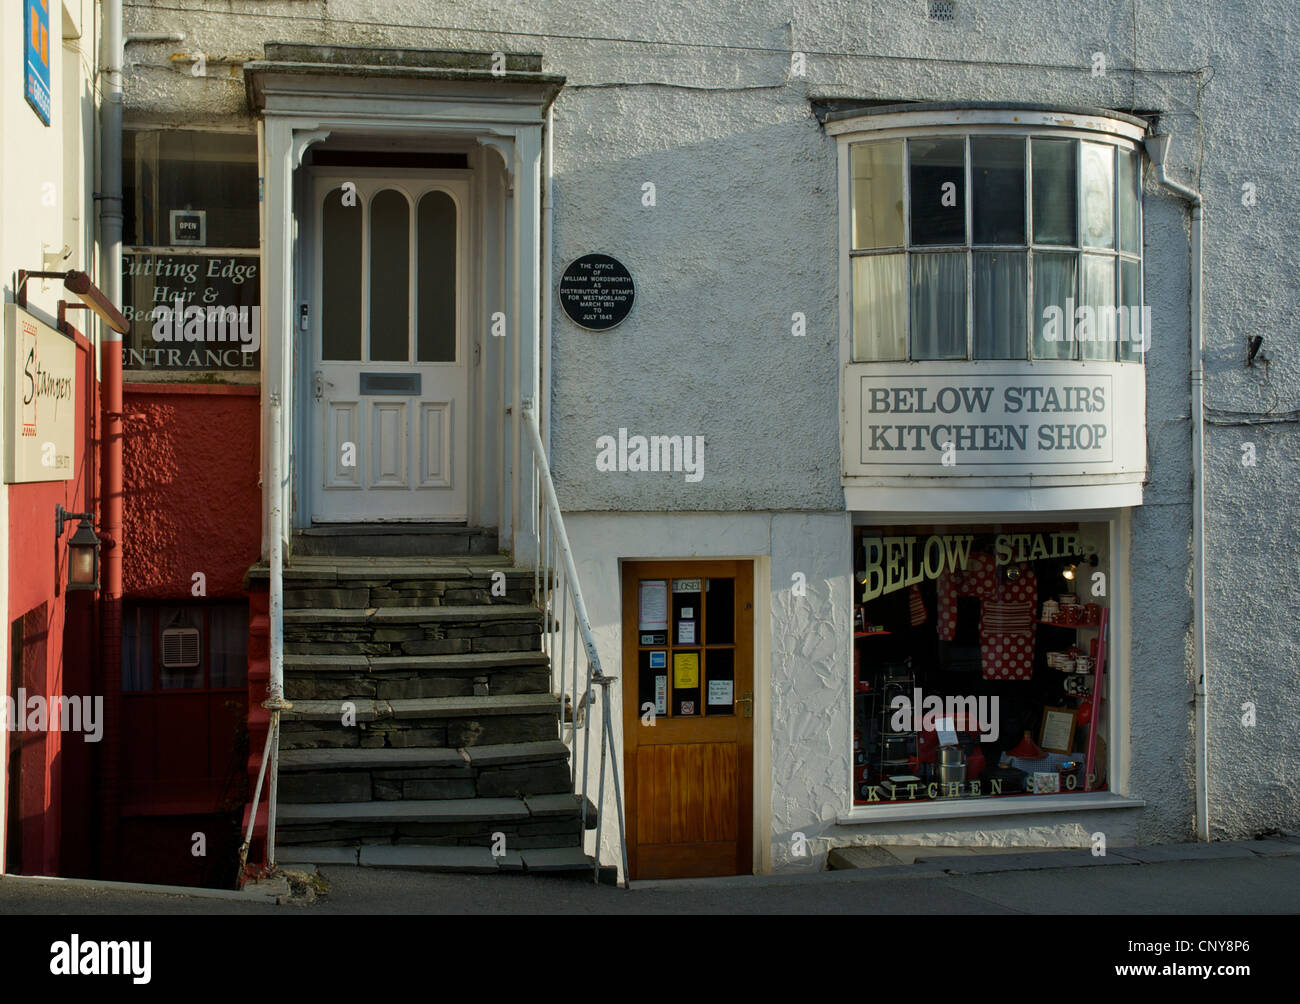 The Old Stamp House (where William Wordsworth worked) in the town of Ambleside, Cumbria England UK - Stock Image